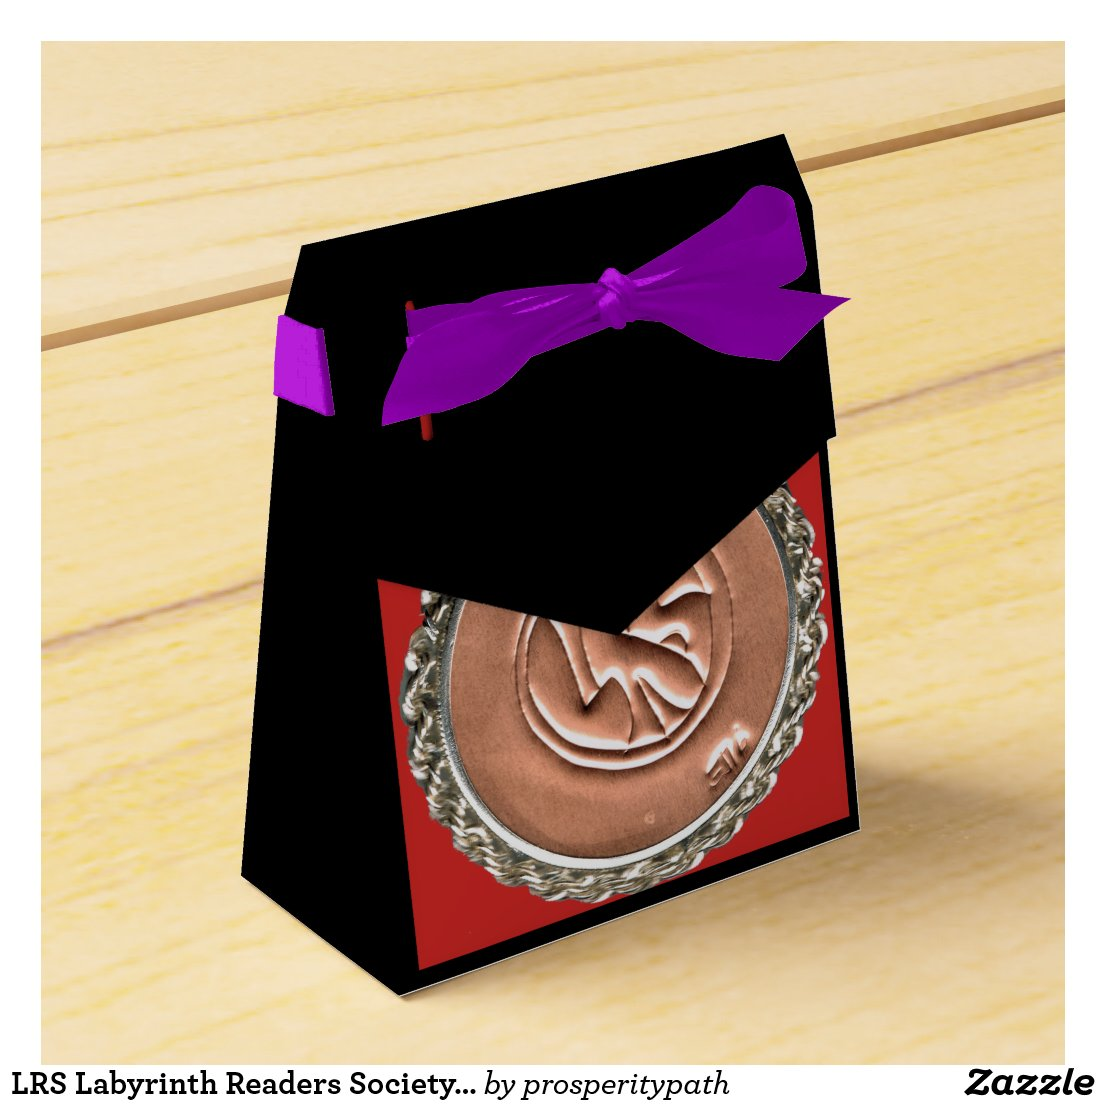 LRS Labyrinth Readers Society Boutique Box